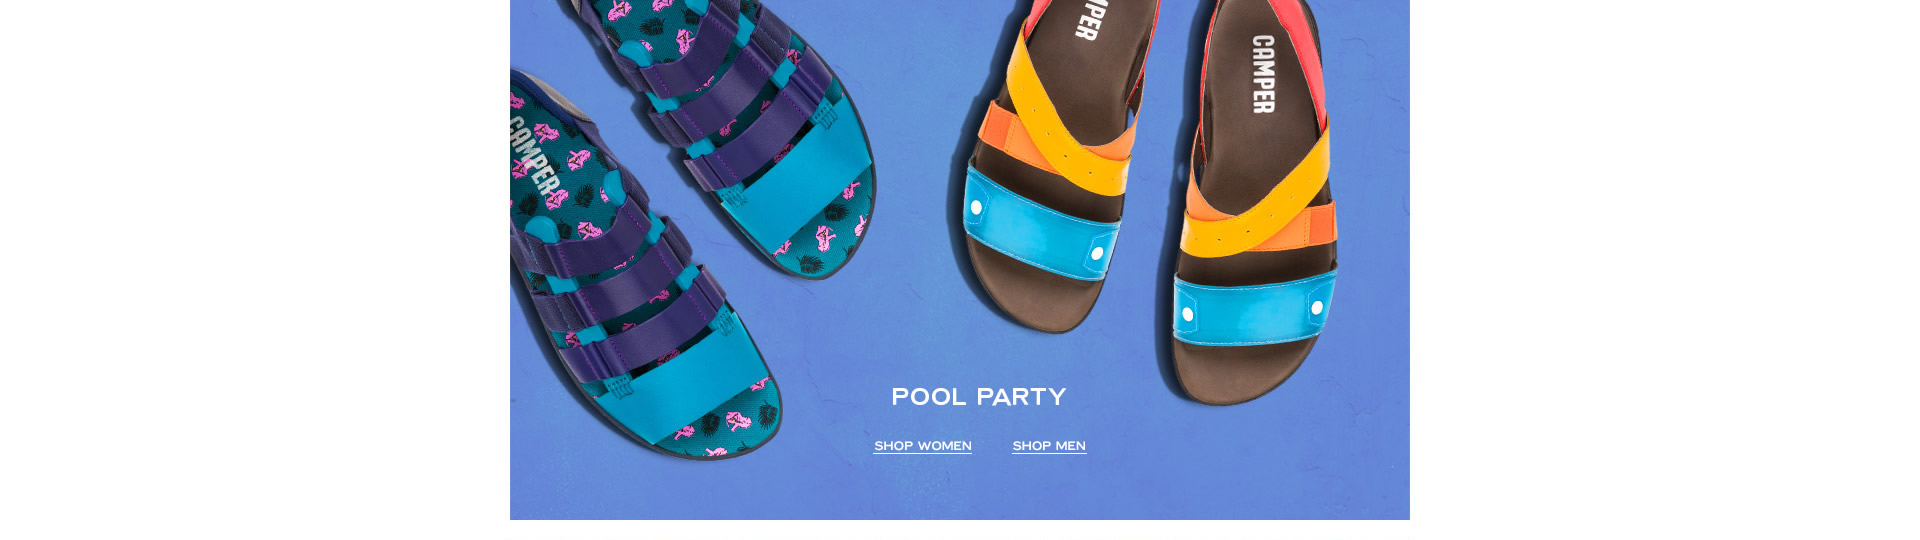 POOL PARTY - Sandals